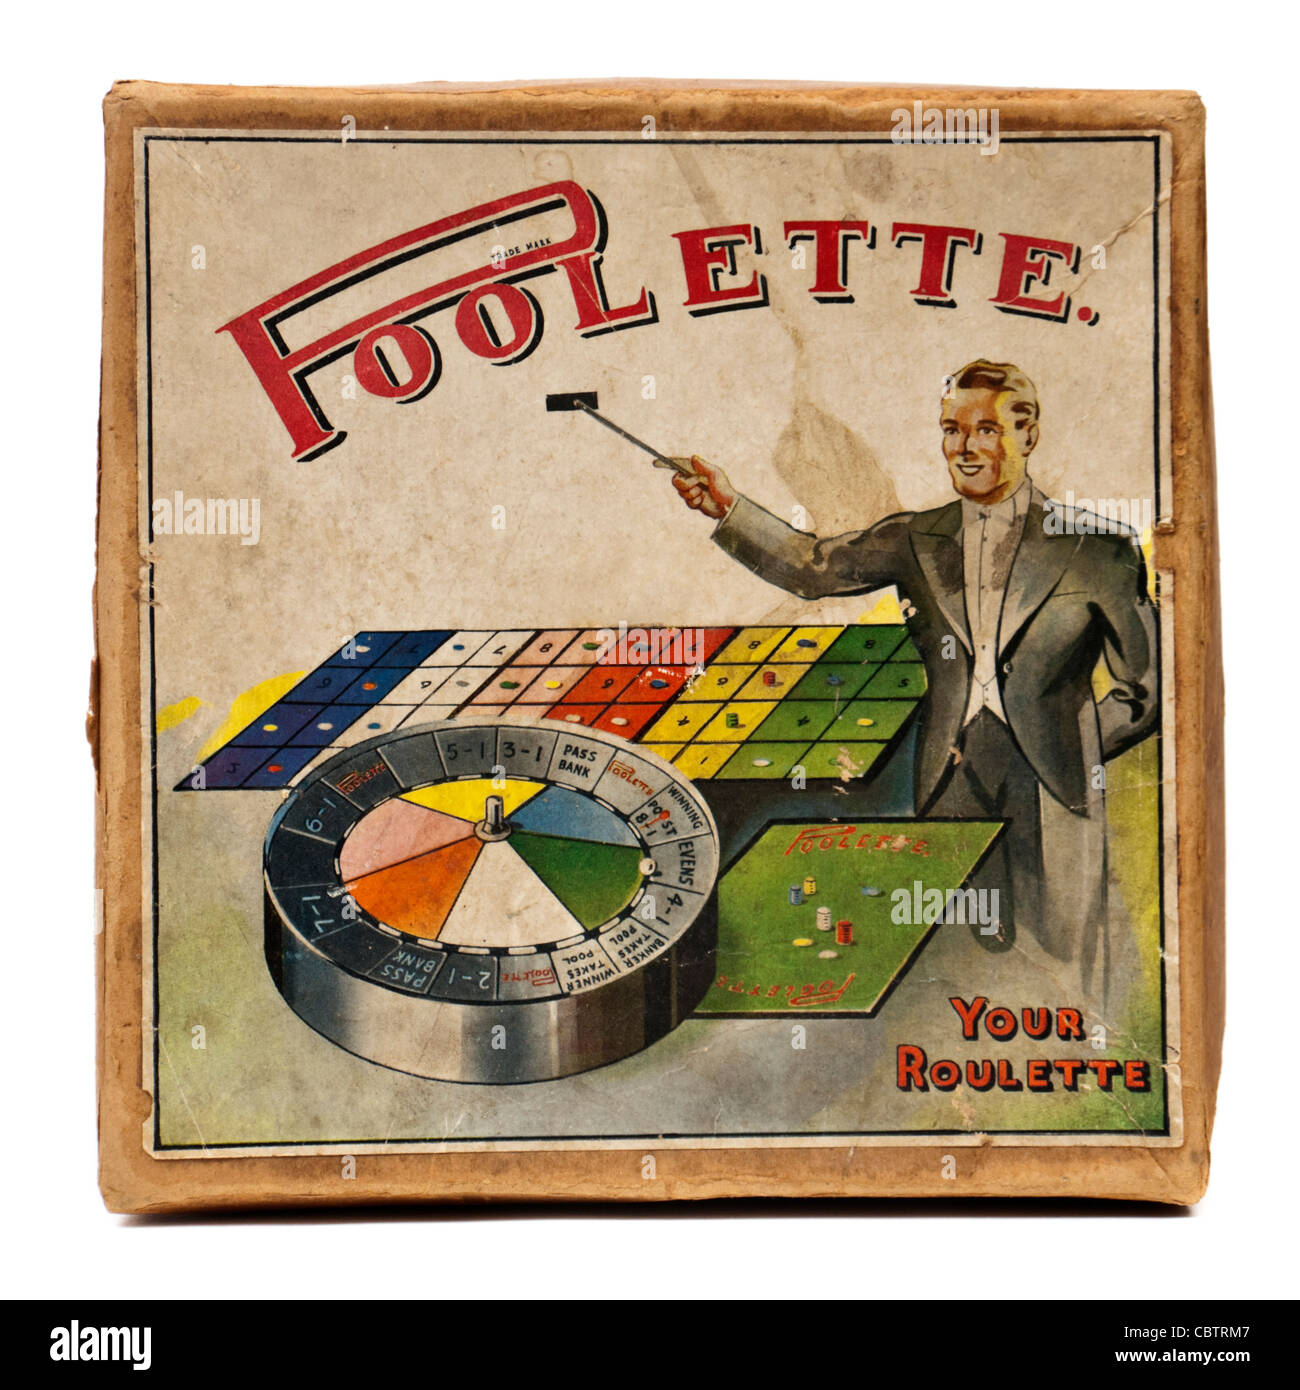 1930 39 s vintage poolette roulette board game stock photo. Black Bedroom Furniture Sets. Home Design Ideas